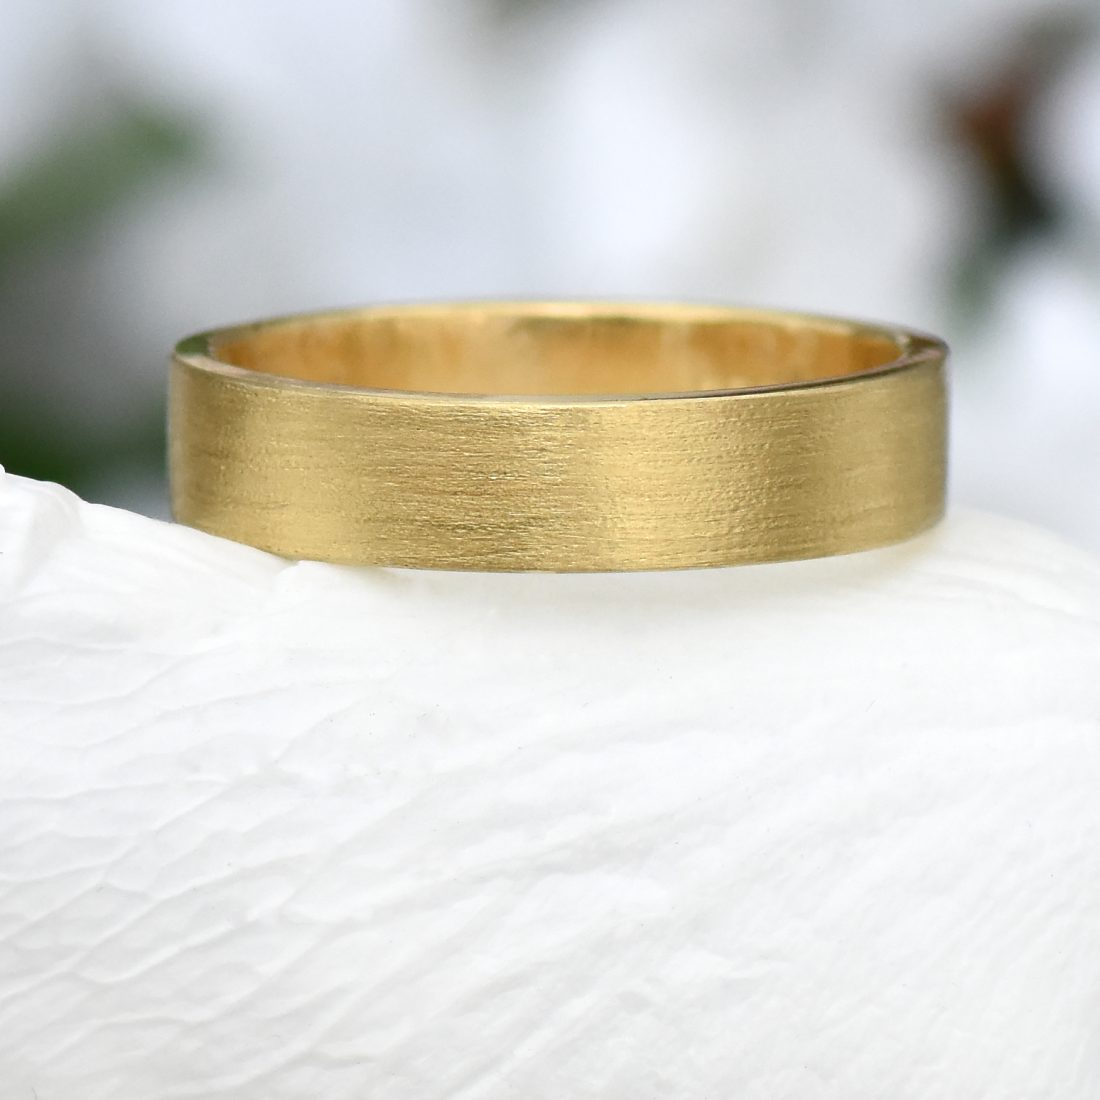 5mm flat wedding ring in gold